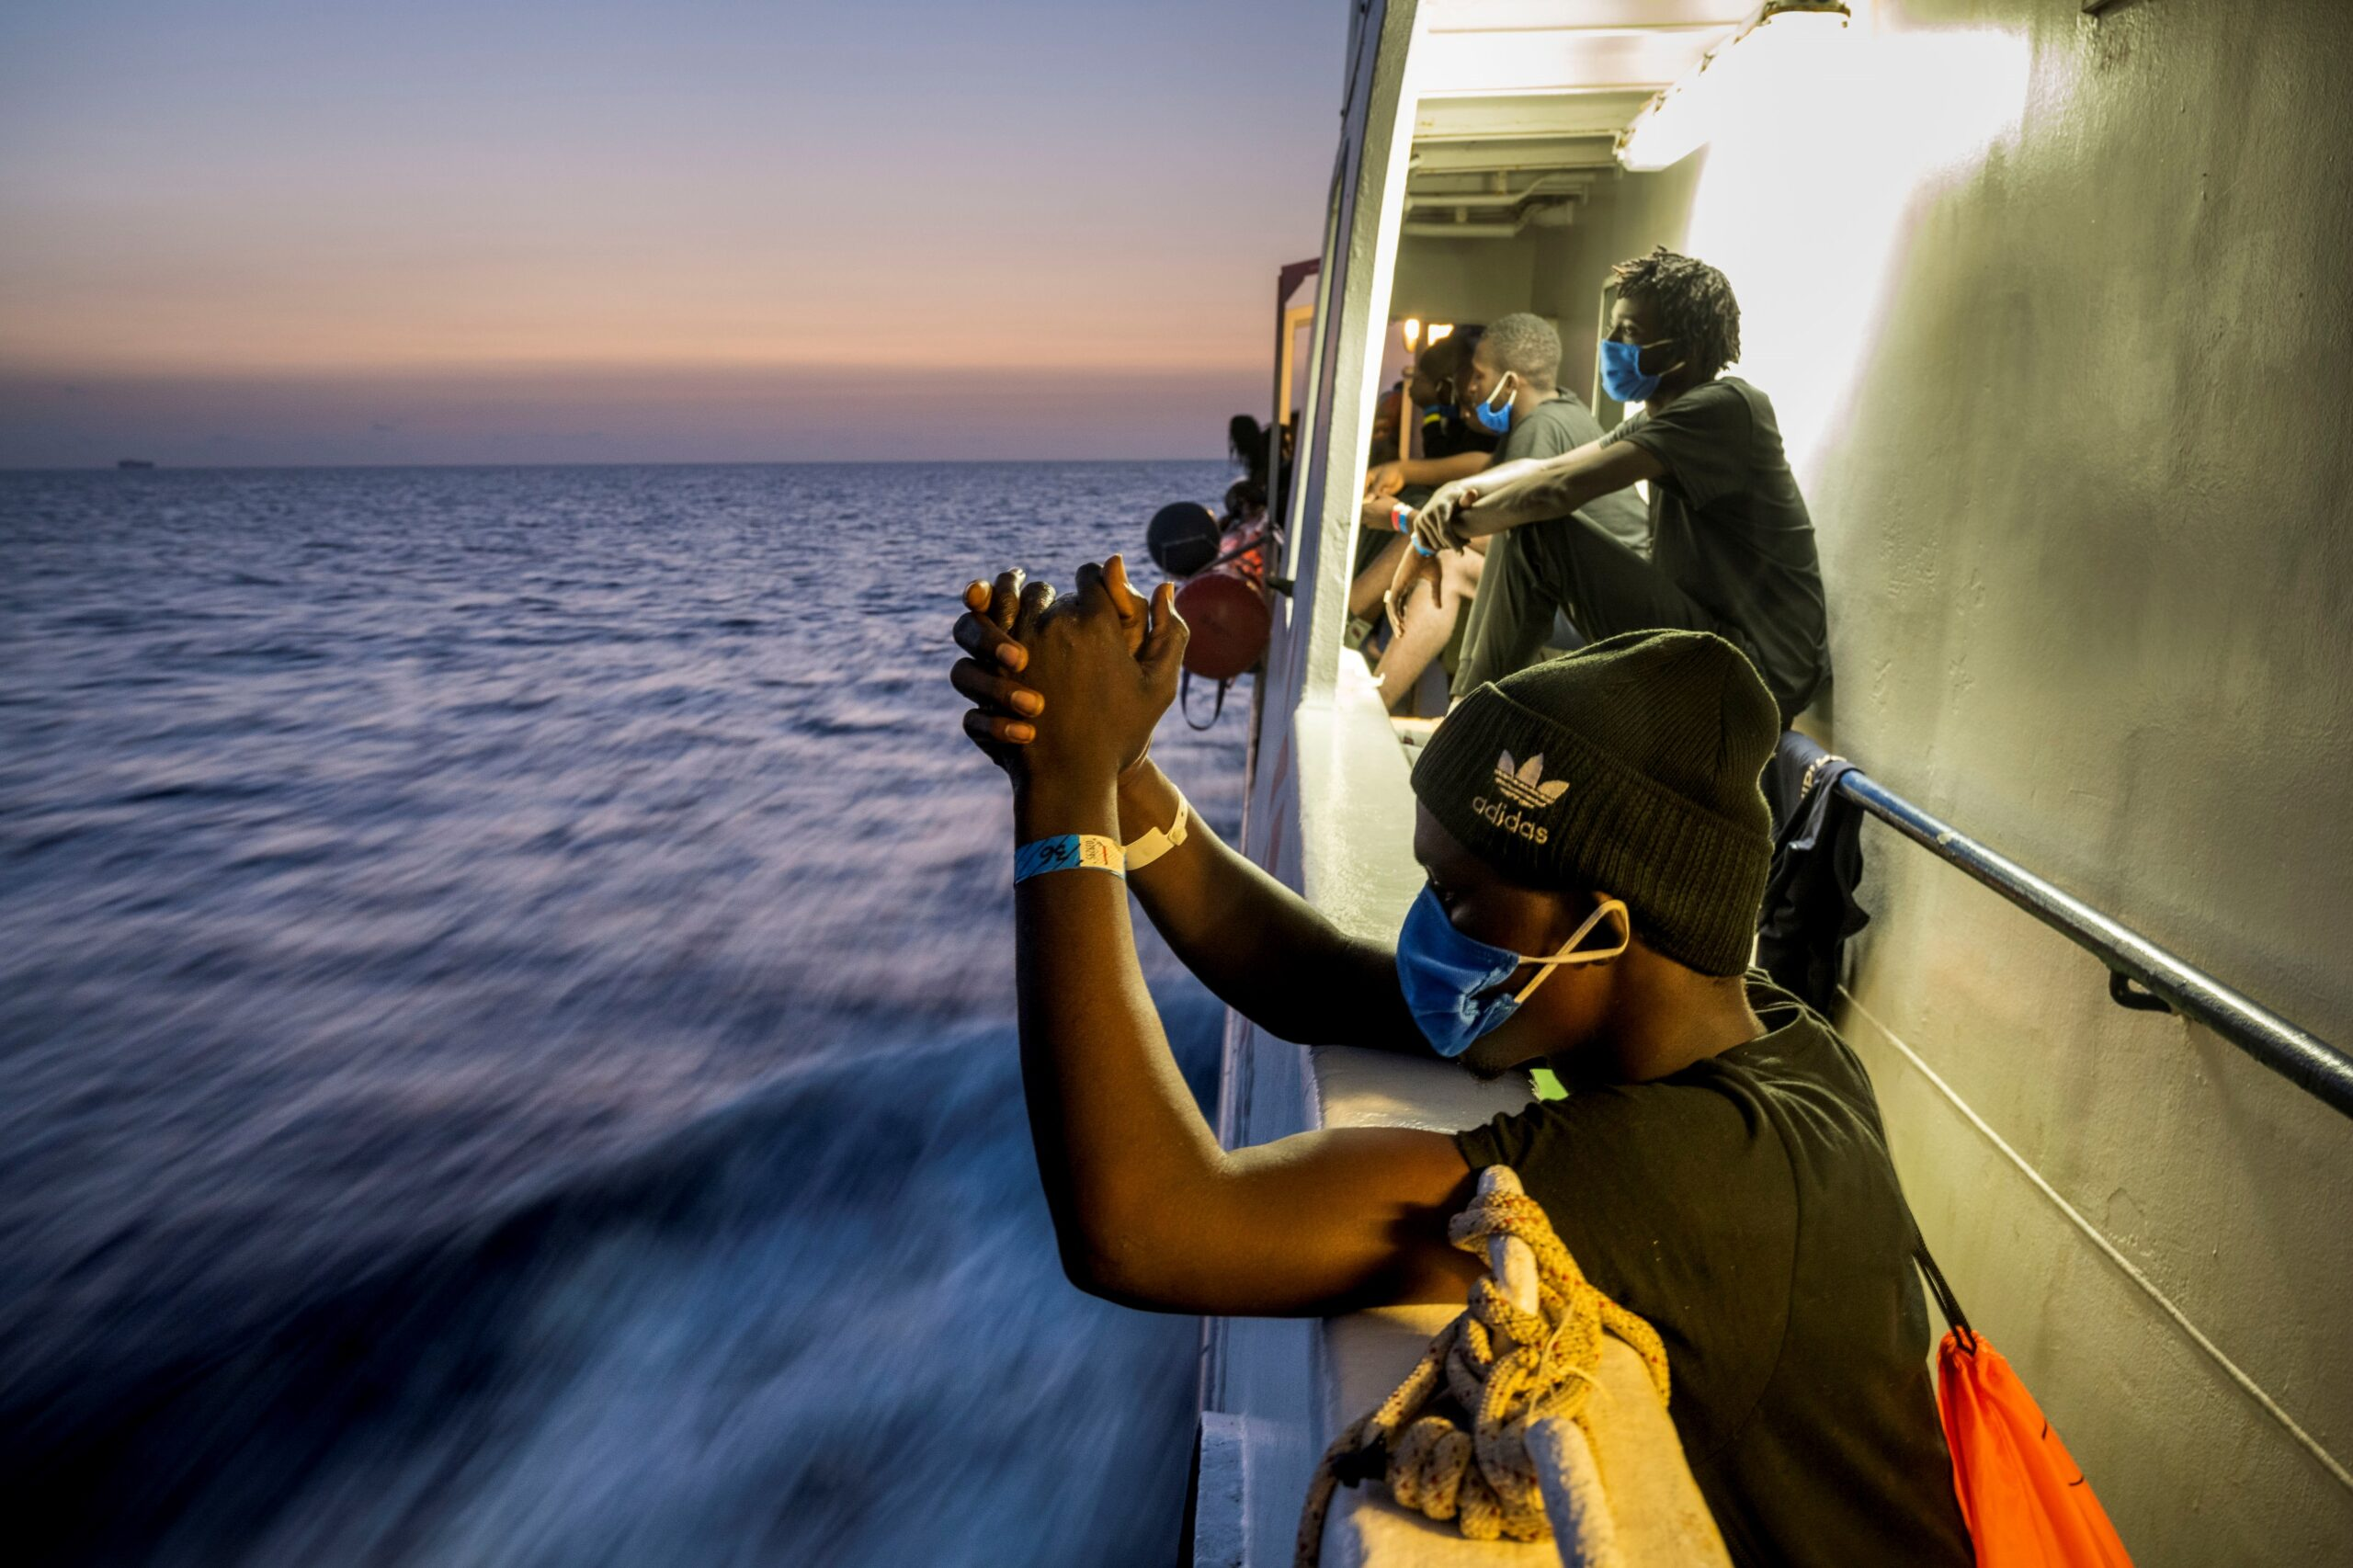 Malta: Illegal tactics mar another year of suffering in central Mediterranean